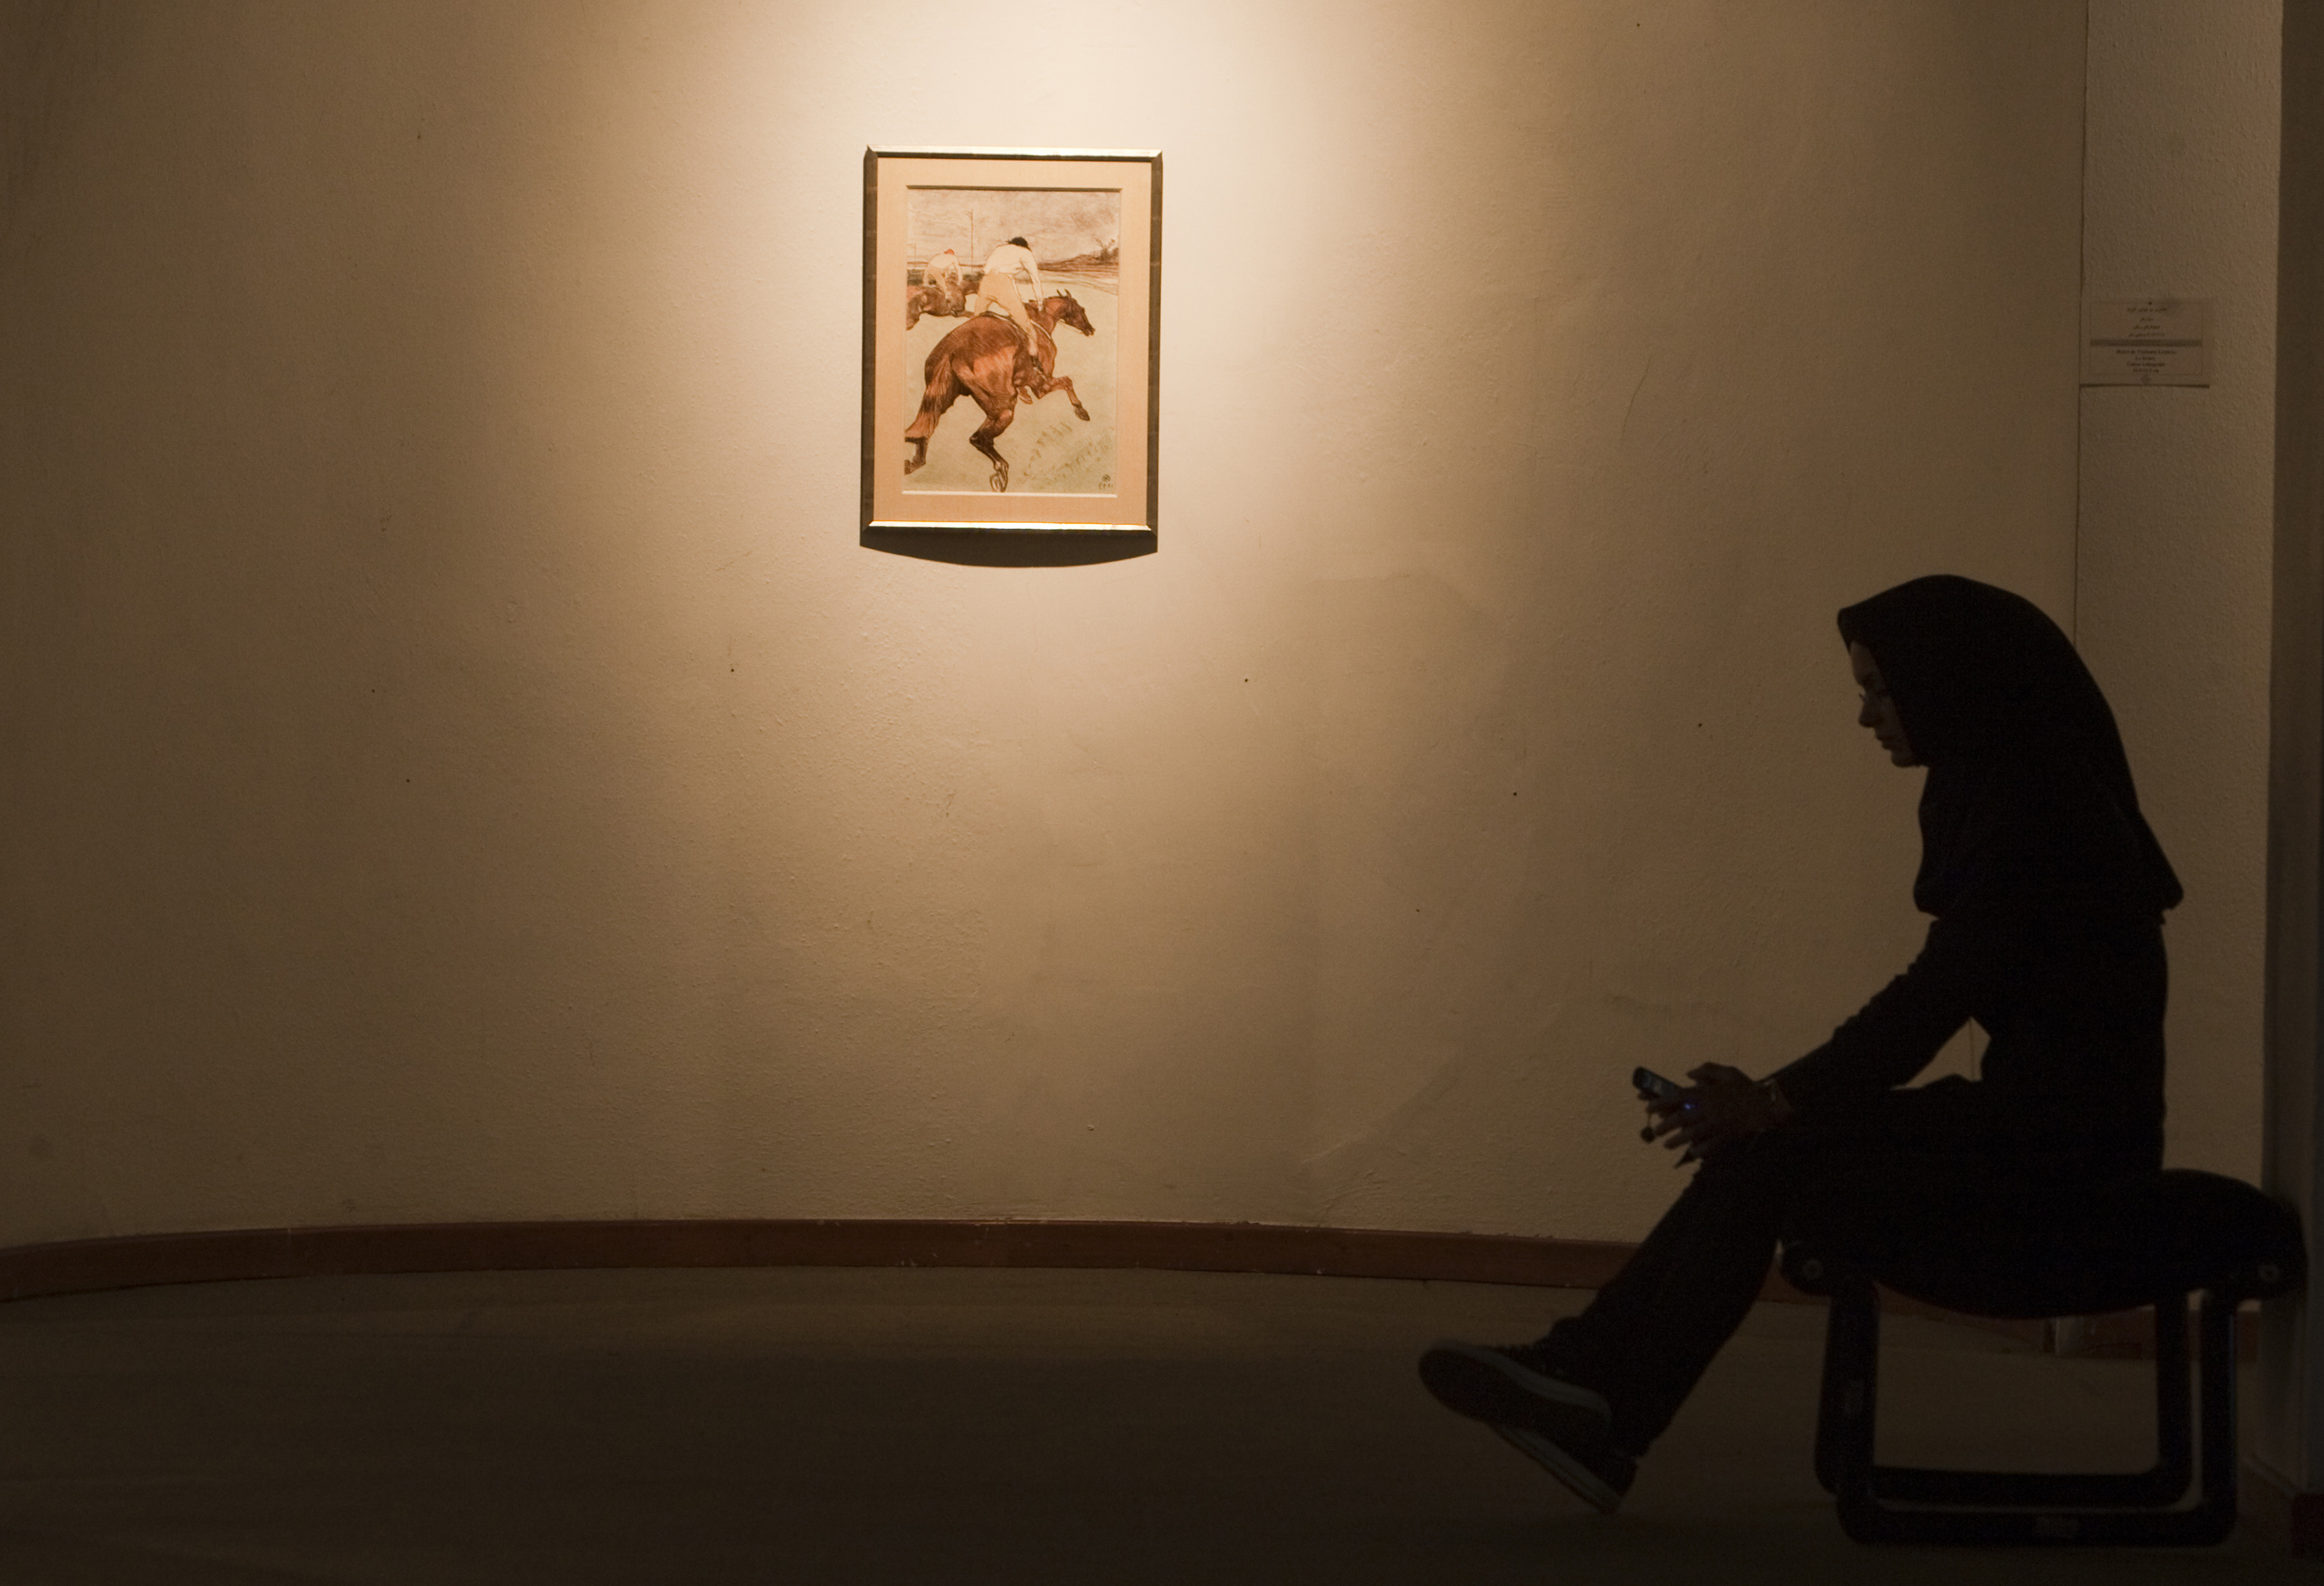 A security personnel sits next to a painting by the 20th century French painter Henri de Toulouse-Lautrec at Tehran's Museum of Contemporary Art on June 19, 2010